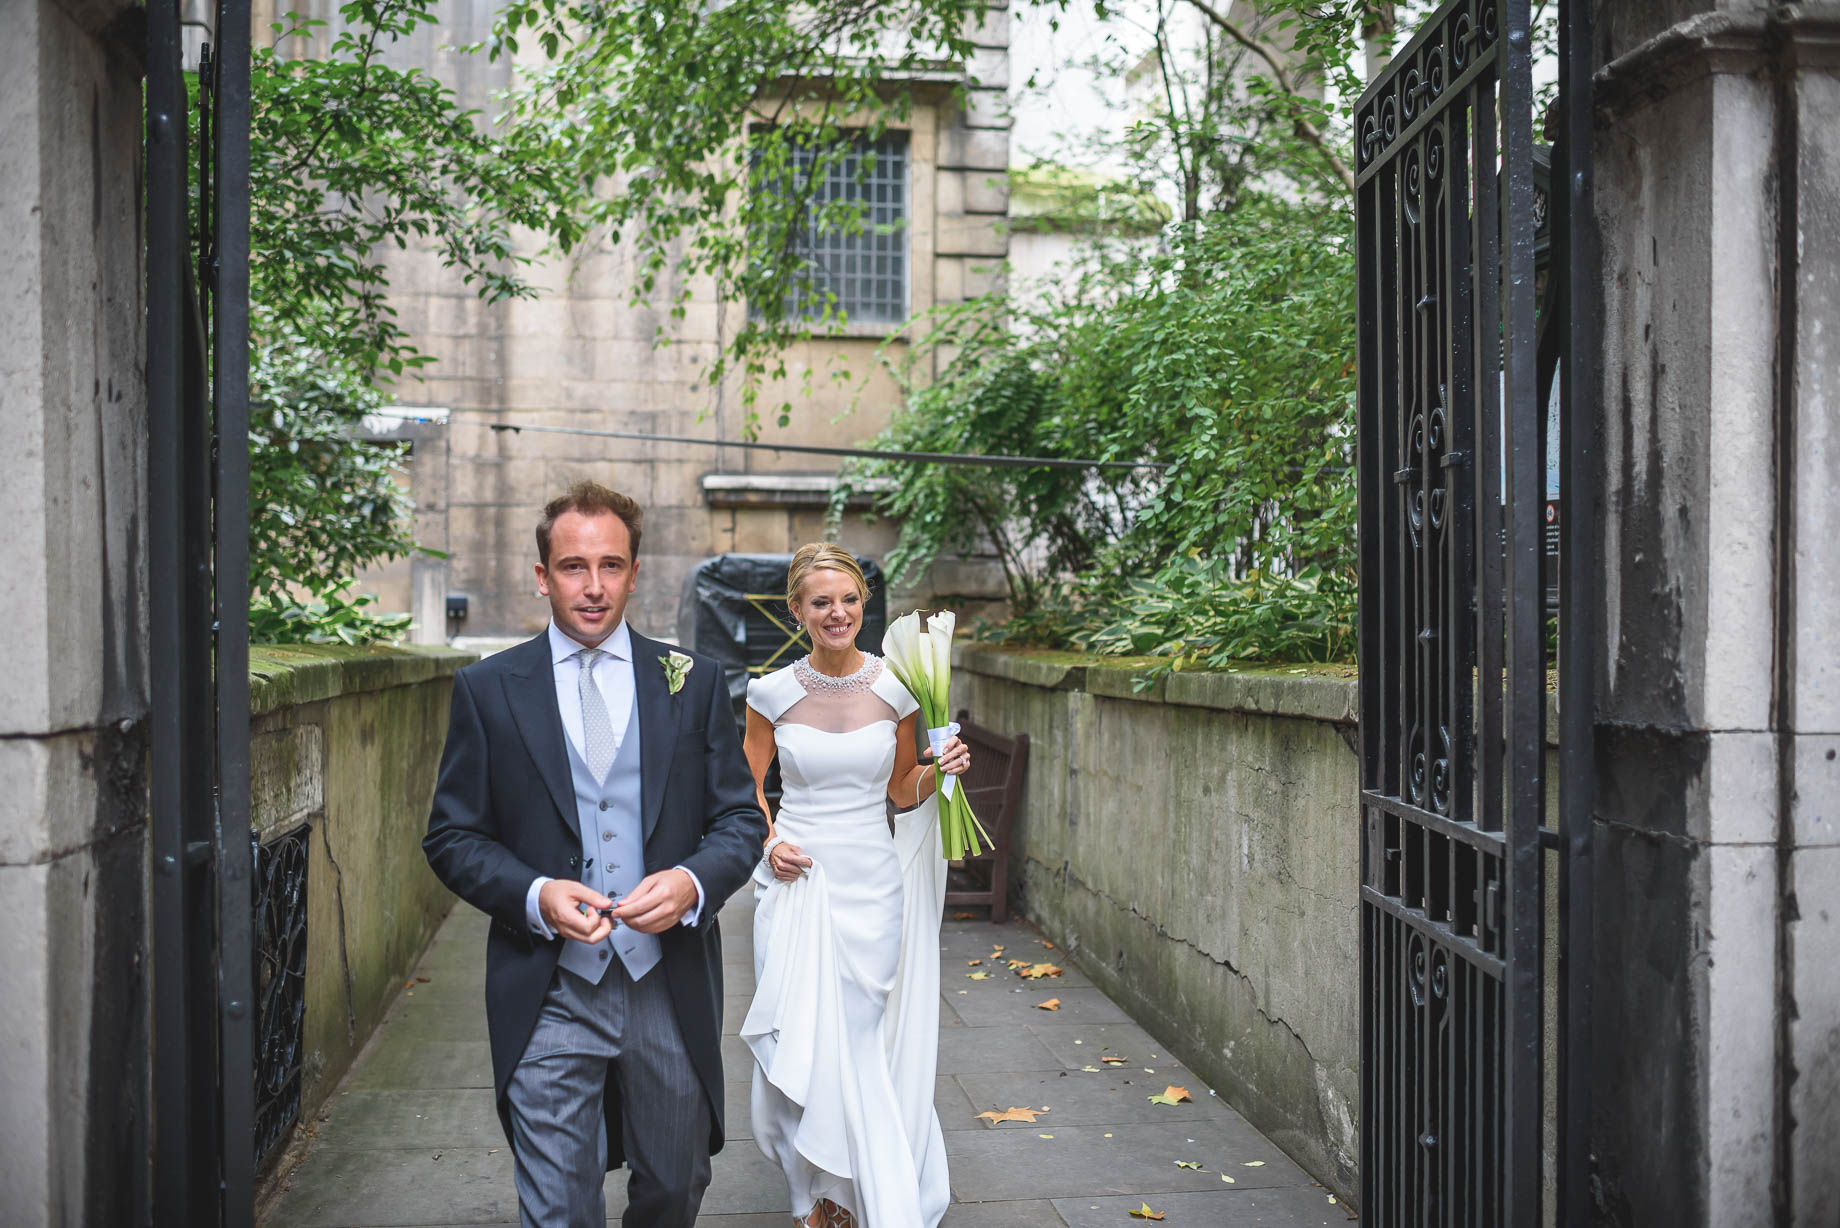 Shoreditch wedding photography - Guy Collier - Kat and Henry (103 of 200)